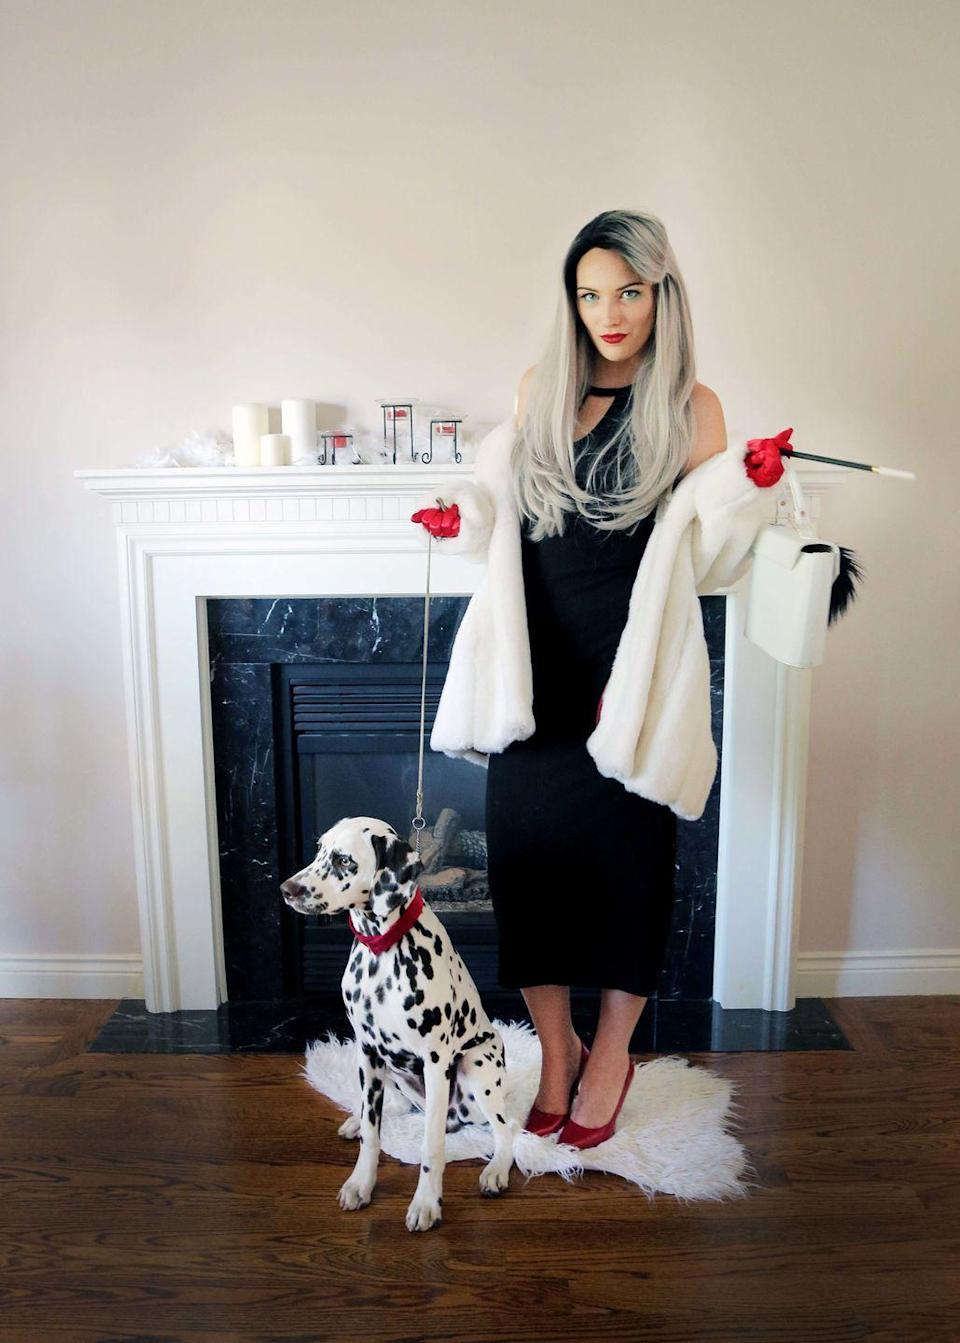 """<p>Talk about scary! If this Halloween costume inspired by Disney's <em>101 Dalmatians </em>doesn't scare your fellow party-goers, no evil thing will.</p><p><strong>Get the tutorial at <a href=""""https://www.thesorrygirls.com/lifestyle/cruella-de-vil-costume-tutorial"""" rel=""""nofollow noopener"""" target=""""_blank"""" data-ylk=""""slk:The Sorry Girls"""" class=""""link rapid-noclick-resp"""">The Sorry Girls</a>. </strong> </p>"""